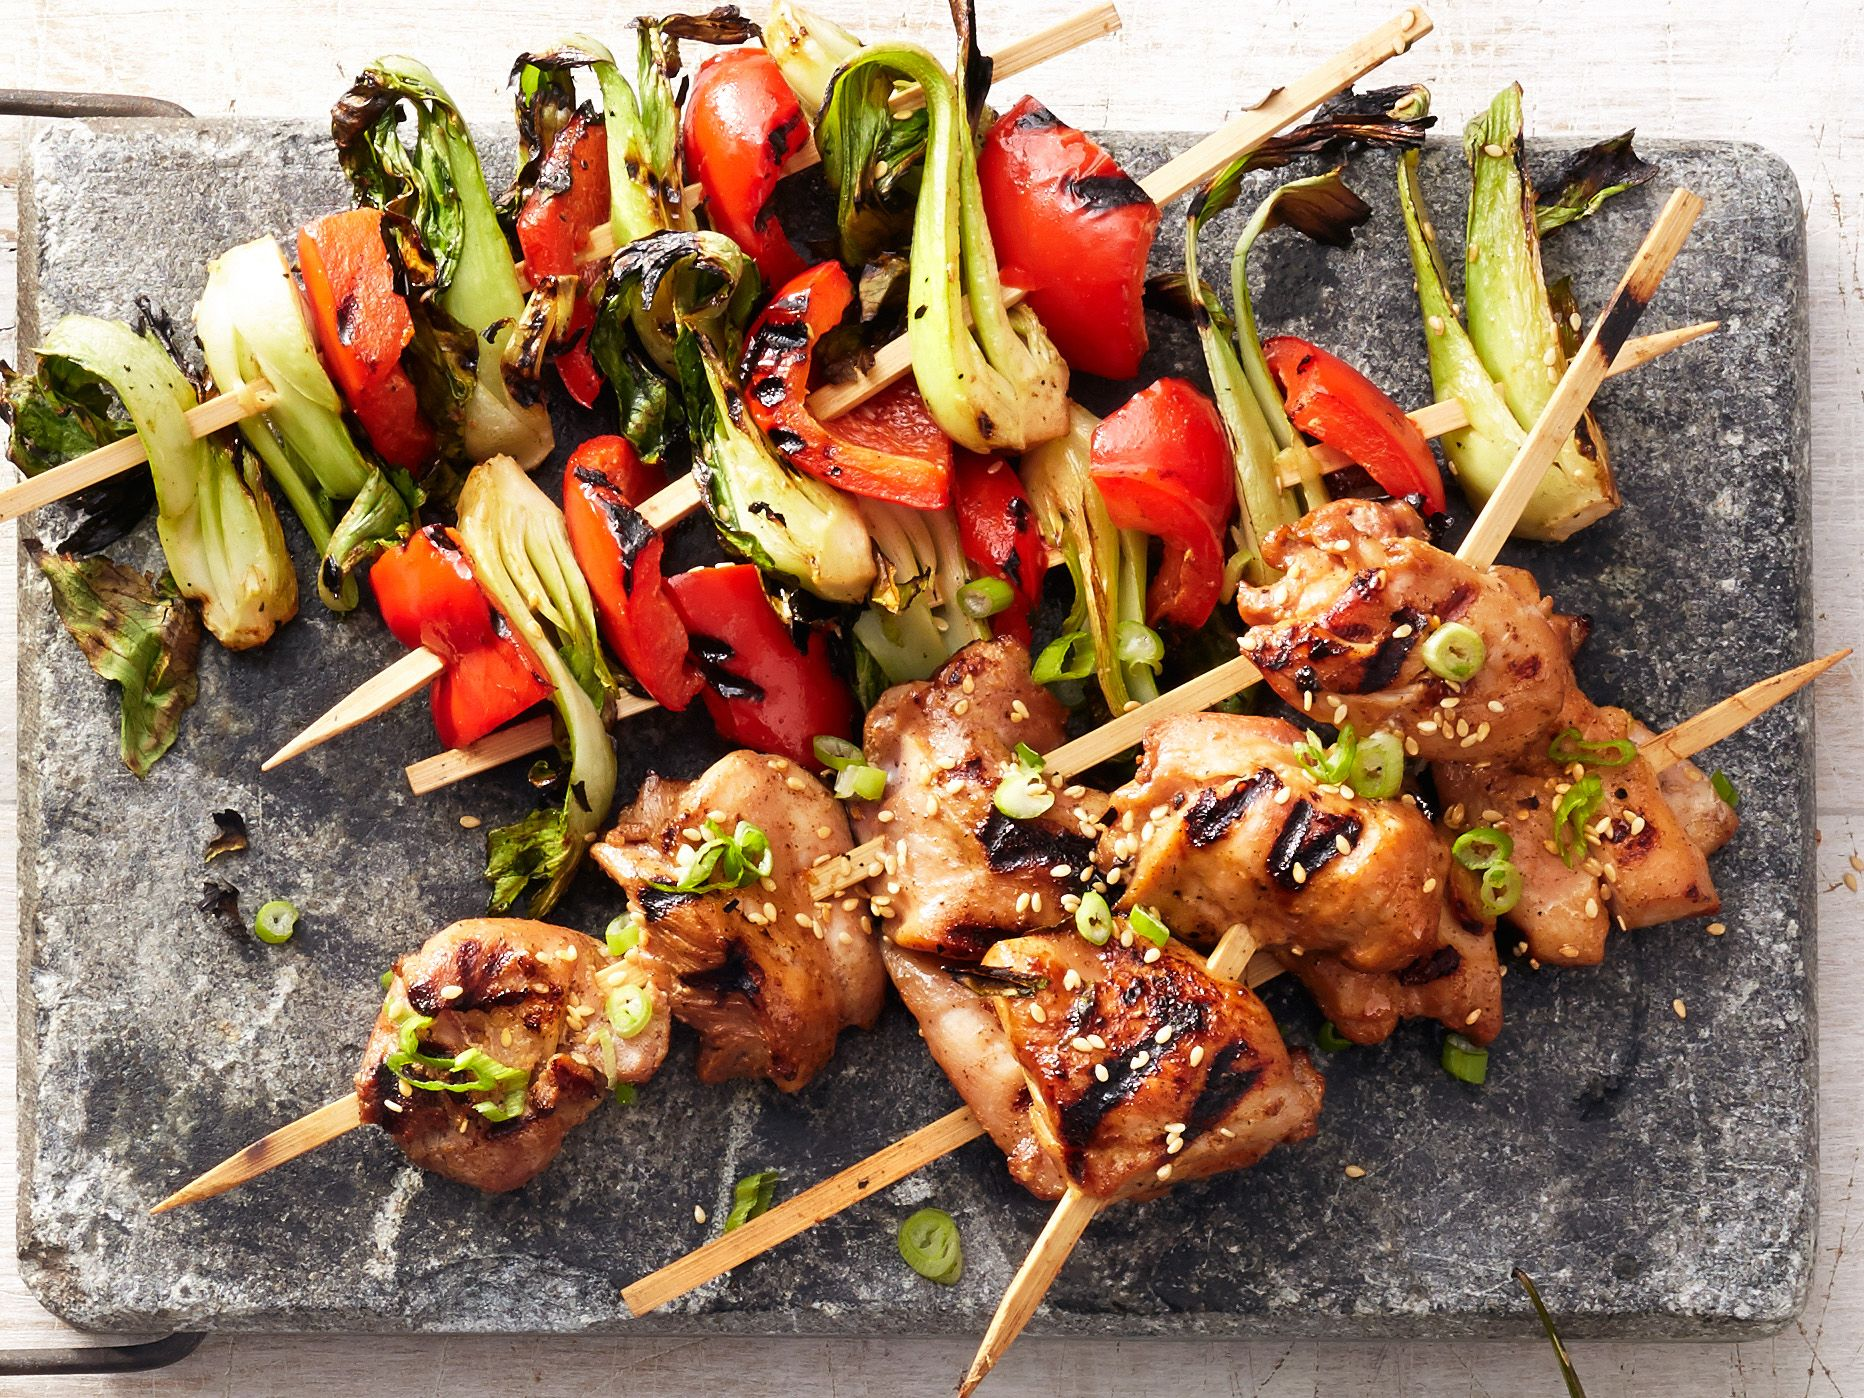 Hoisin chicken and bok choy kebabs recipe kebabs recipes and food forumfinder Images